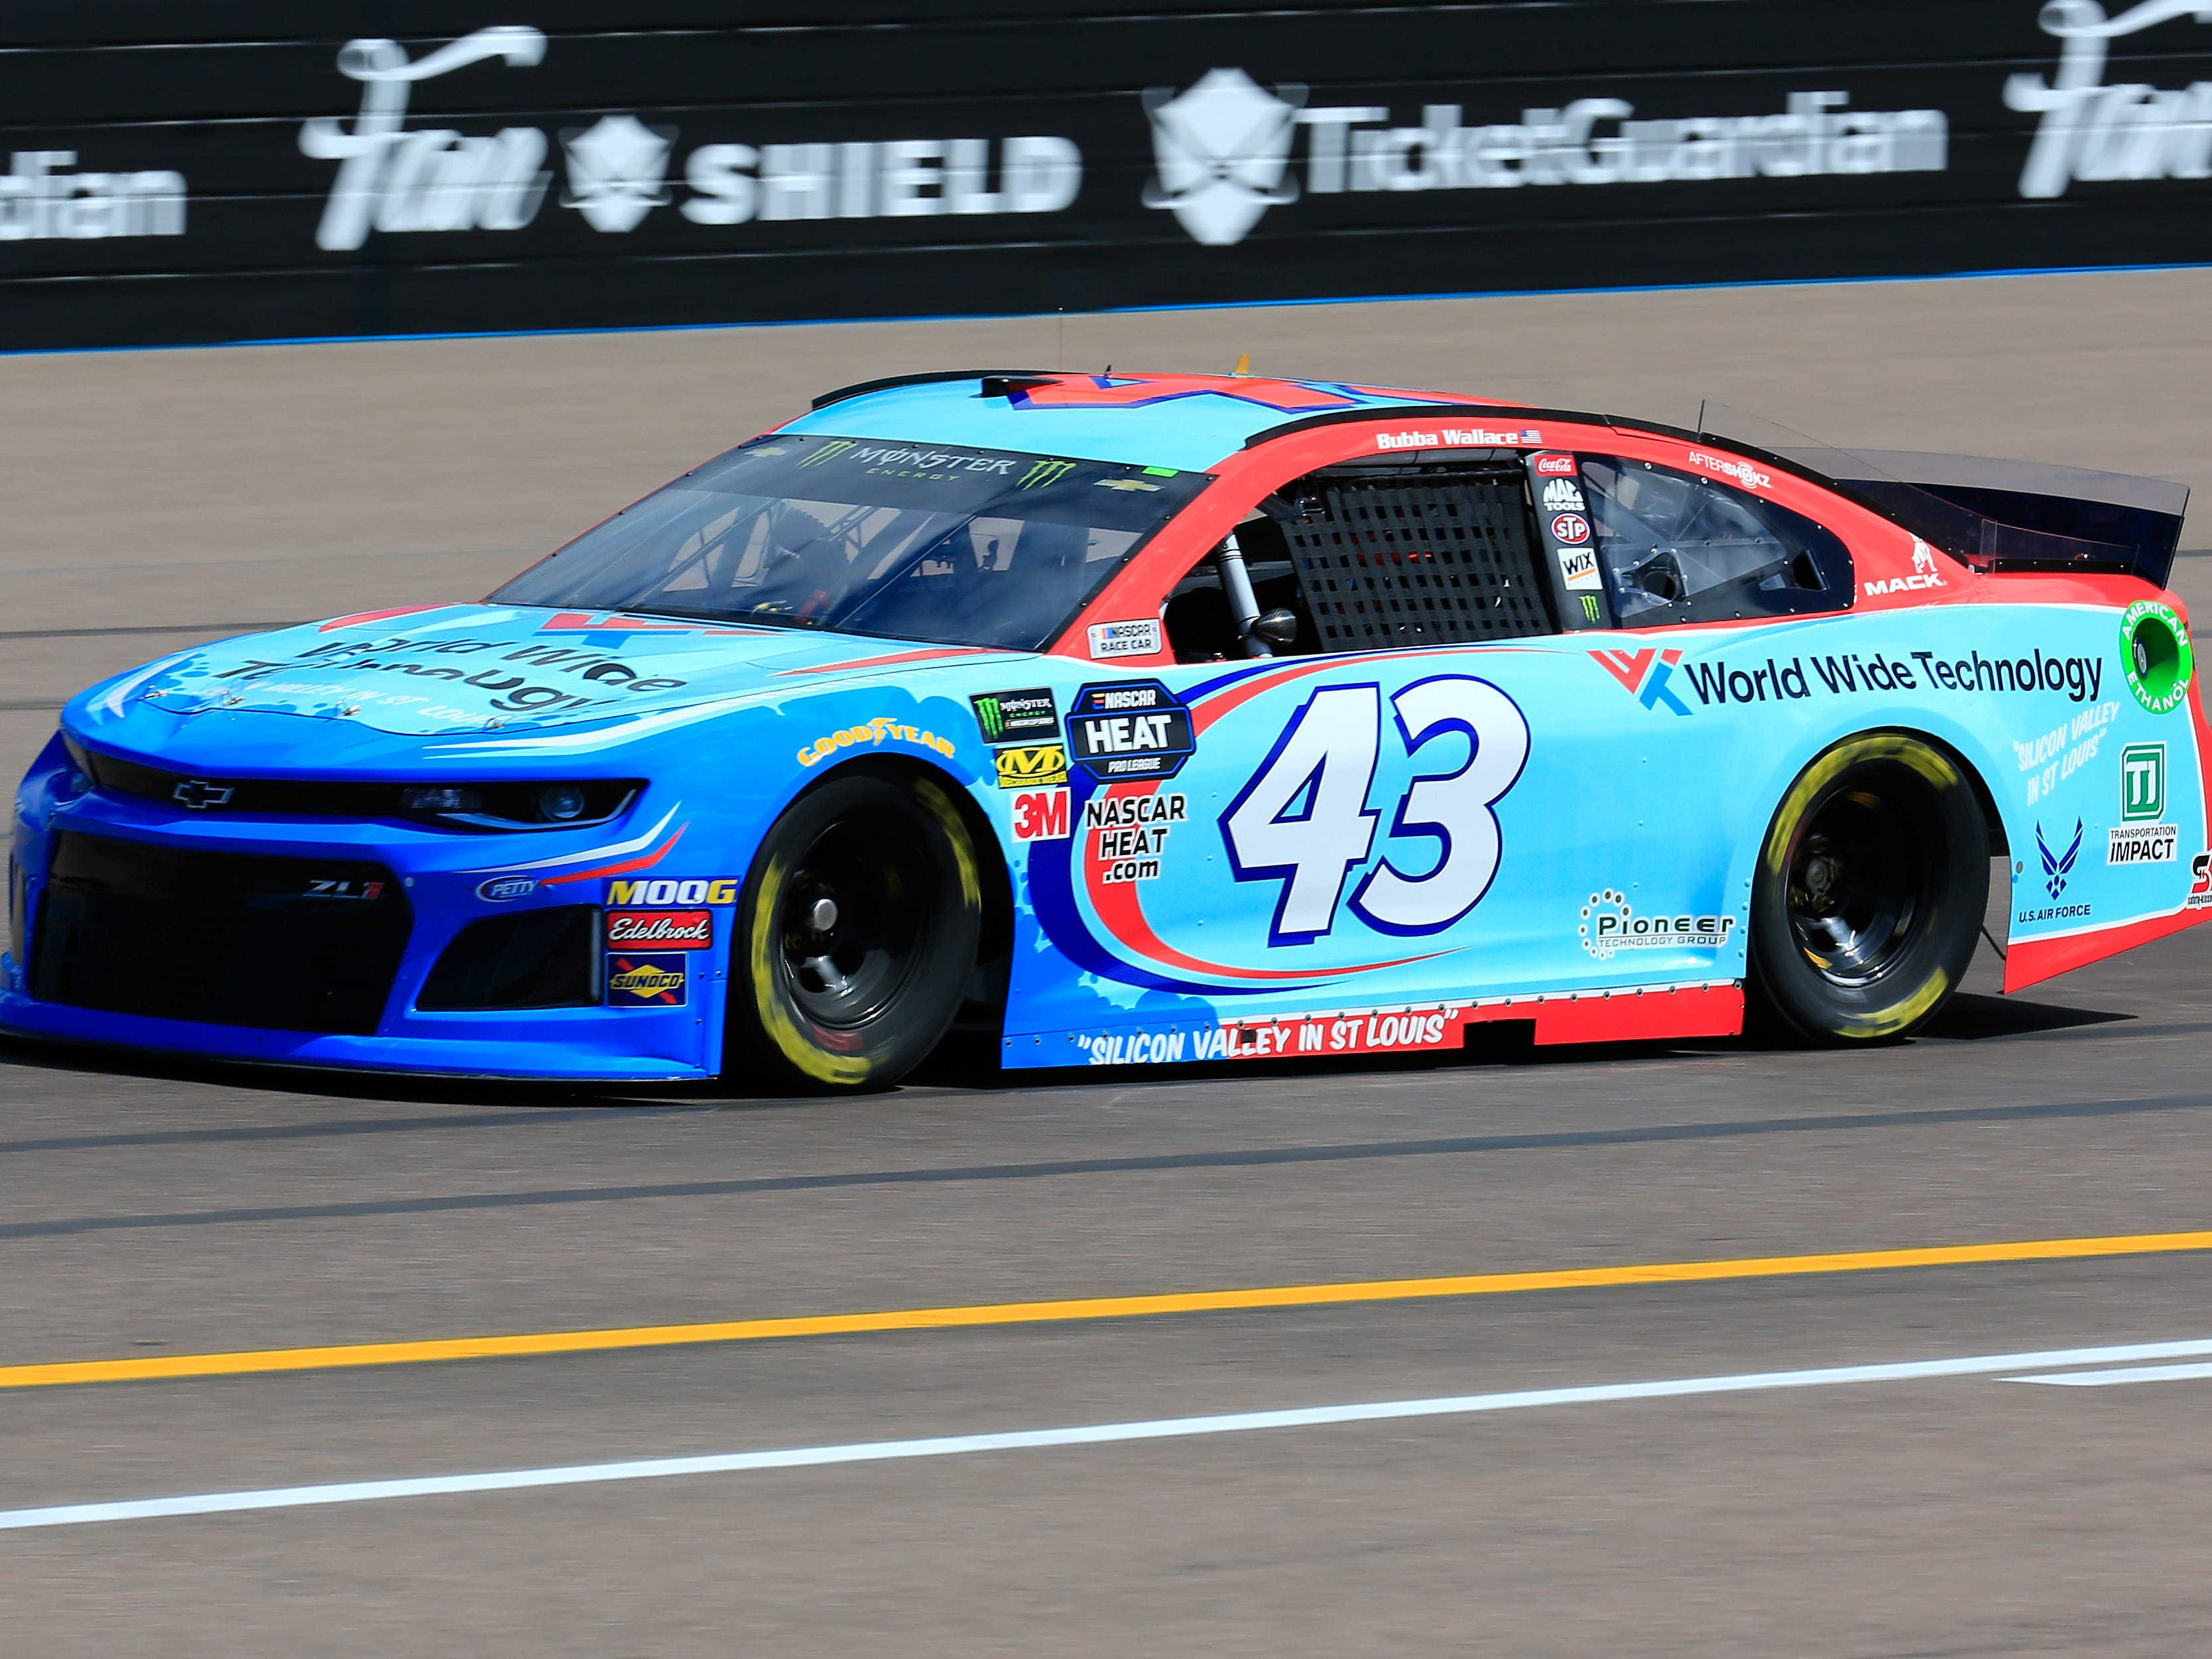 AVONDALE, AZ - MARCH 08: Bubba Wallace, driver of the #43 World Wide Technology Chevrolet, practices for the Monster Energy NASCAR Cup Series TicketGuardian 500 at ISM Raceway on March 8, 2019 in Avondale, Arizona.